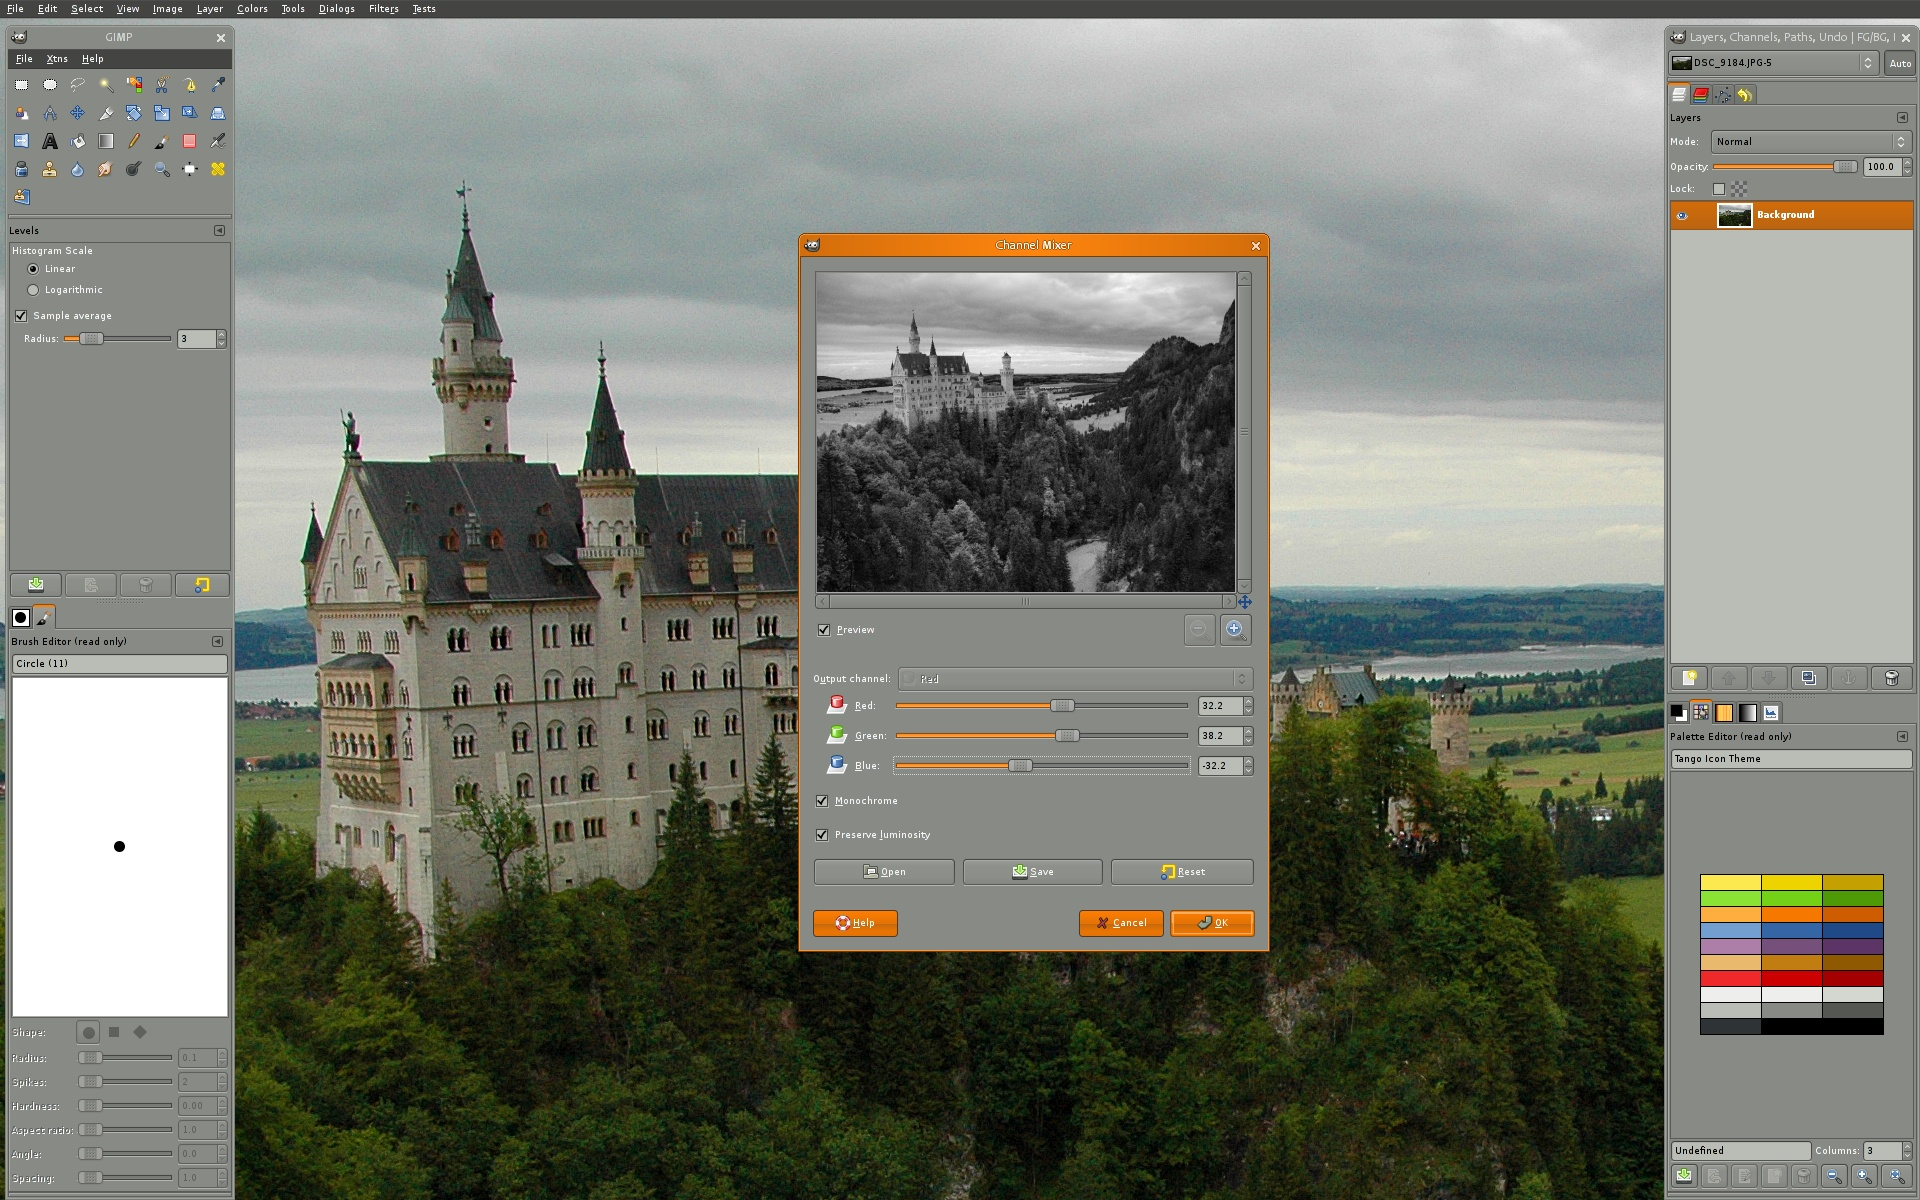 GIMP - Image Manipulation Tool for Windows-Linux-Mac